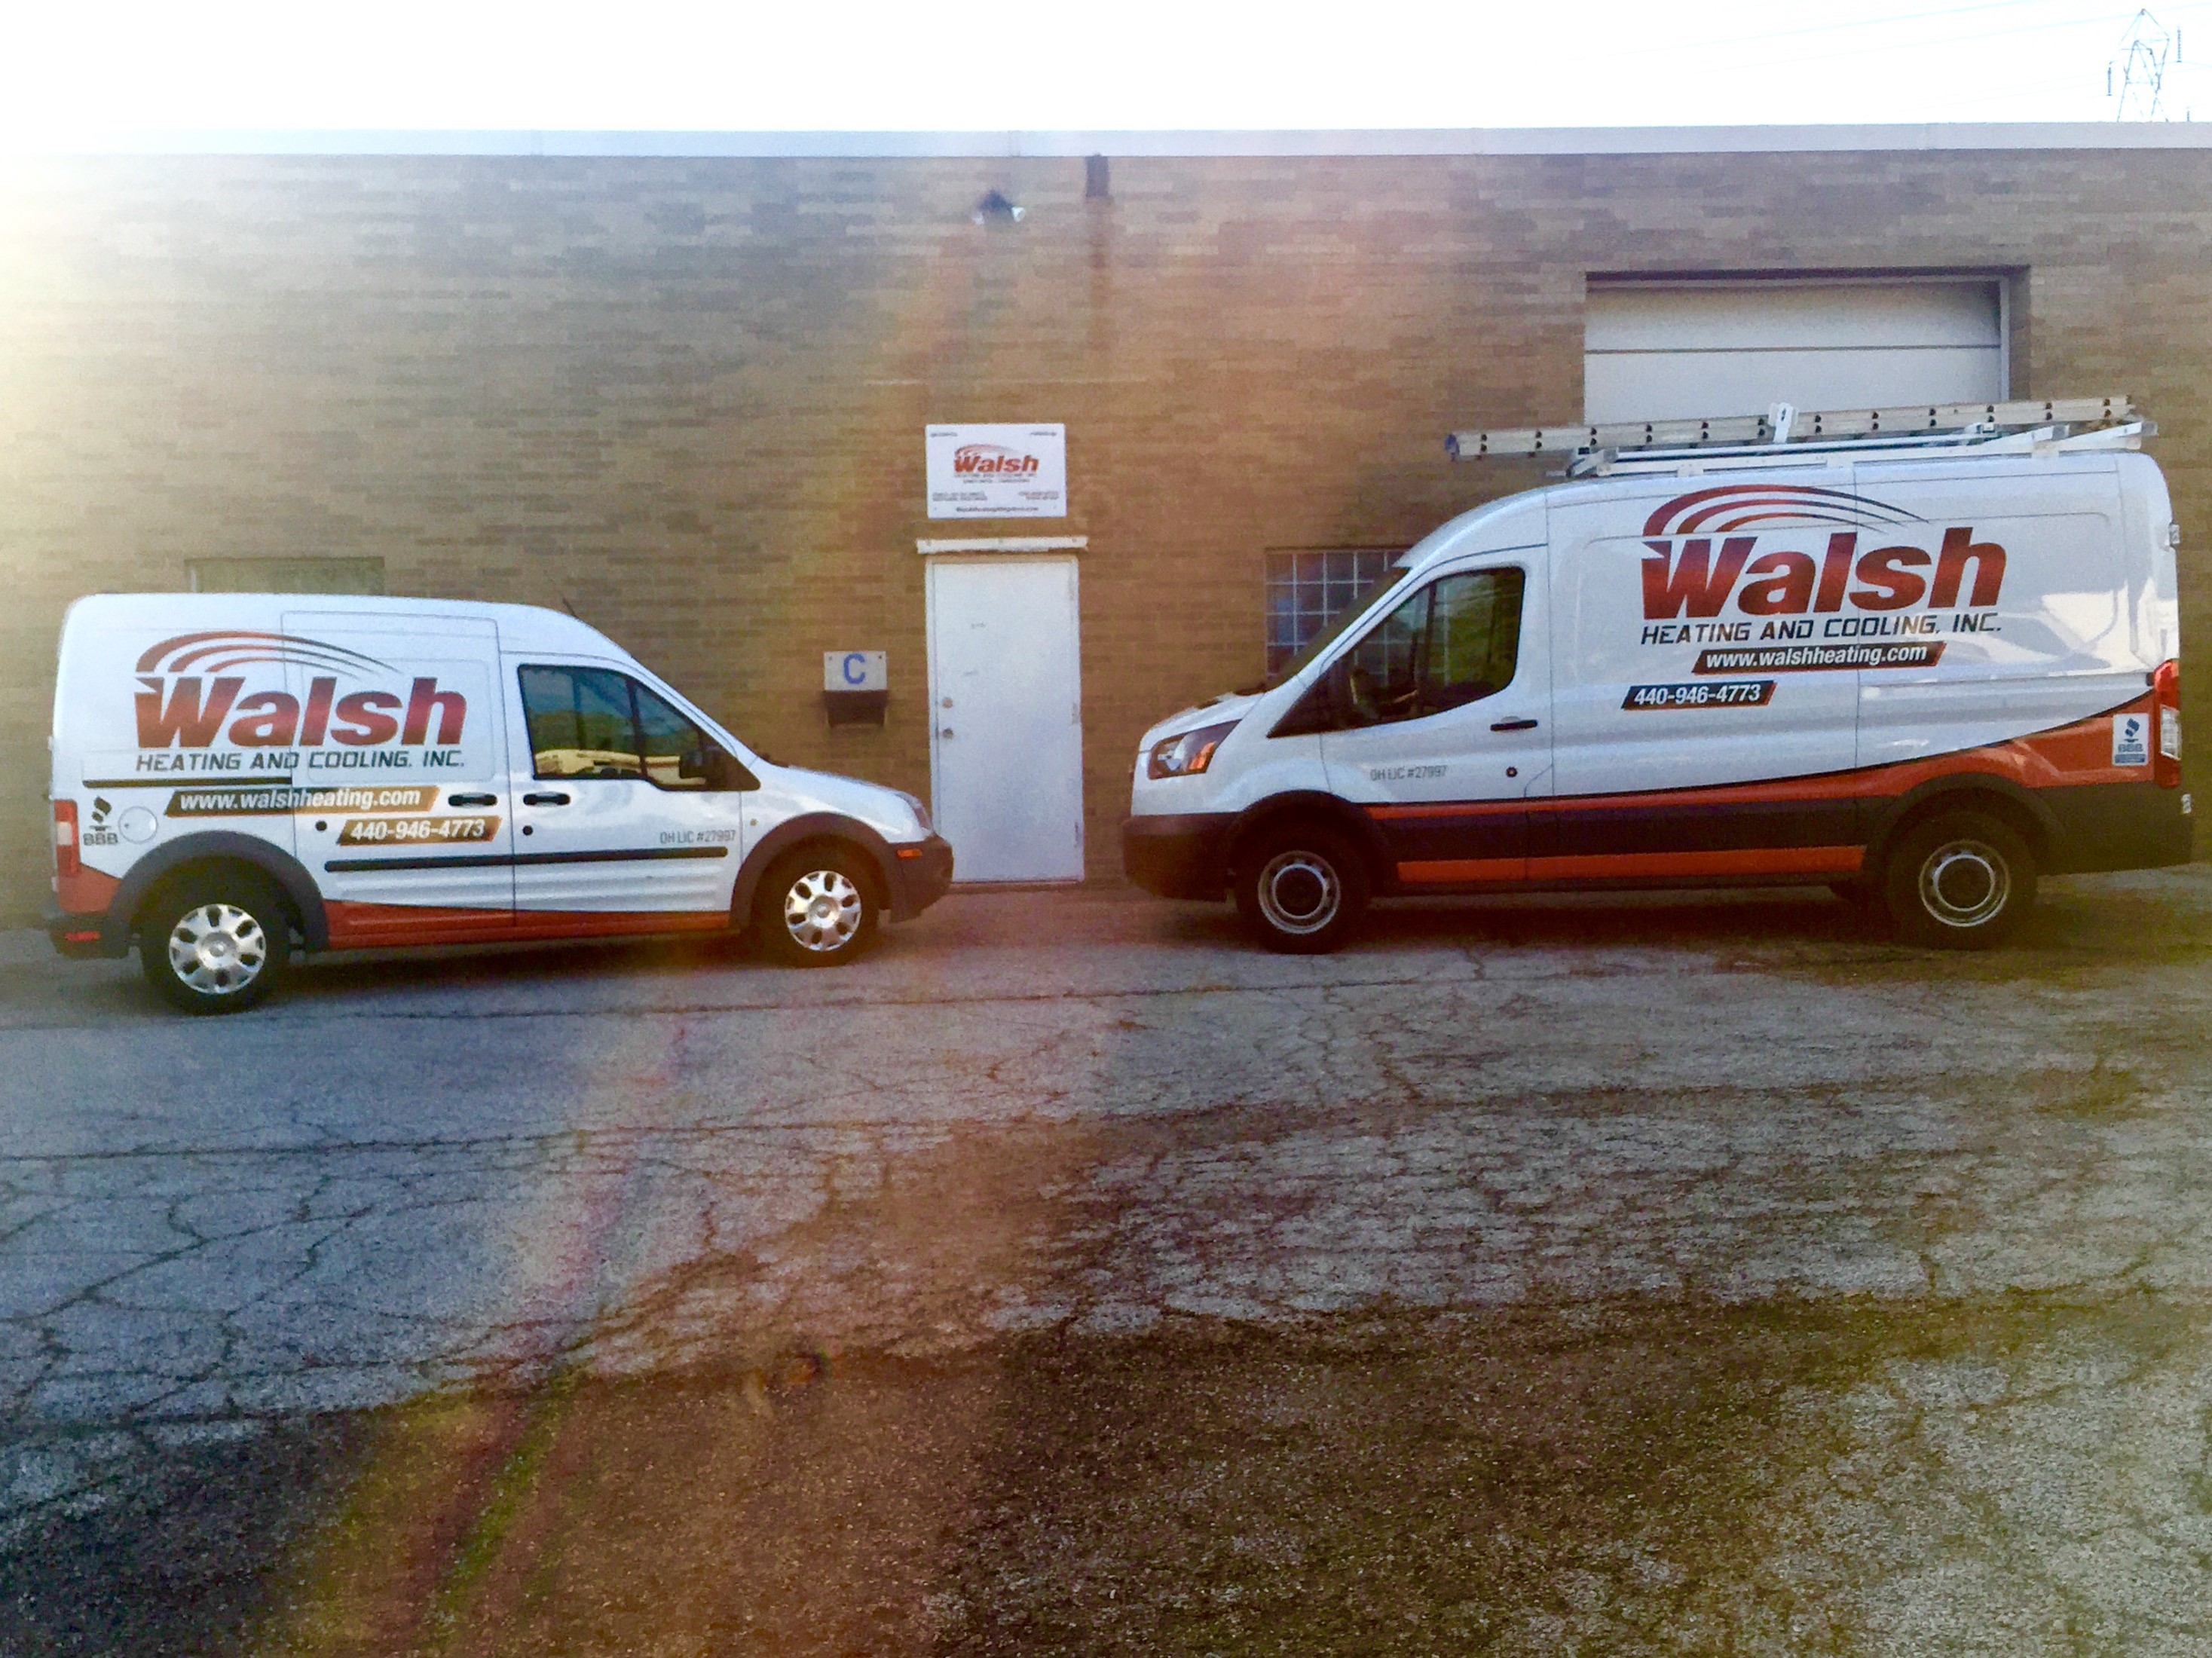 Walsh Heating and Cooling image 1